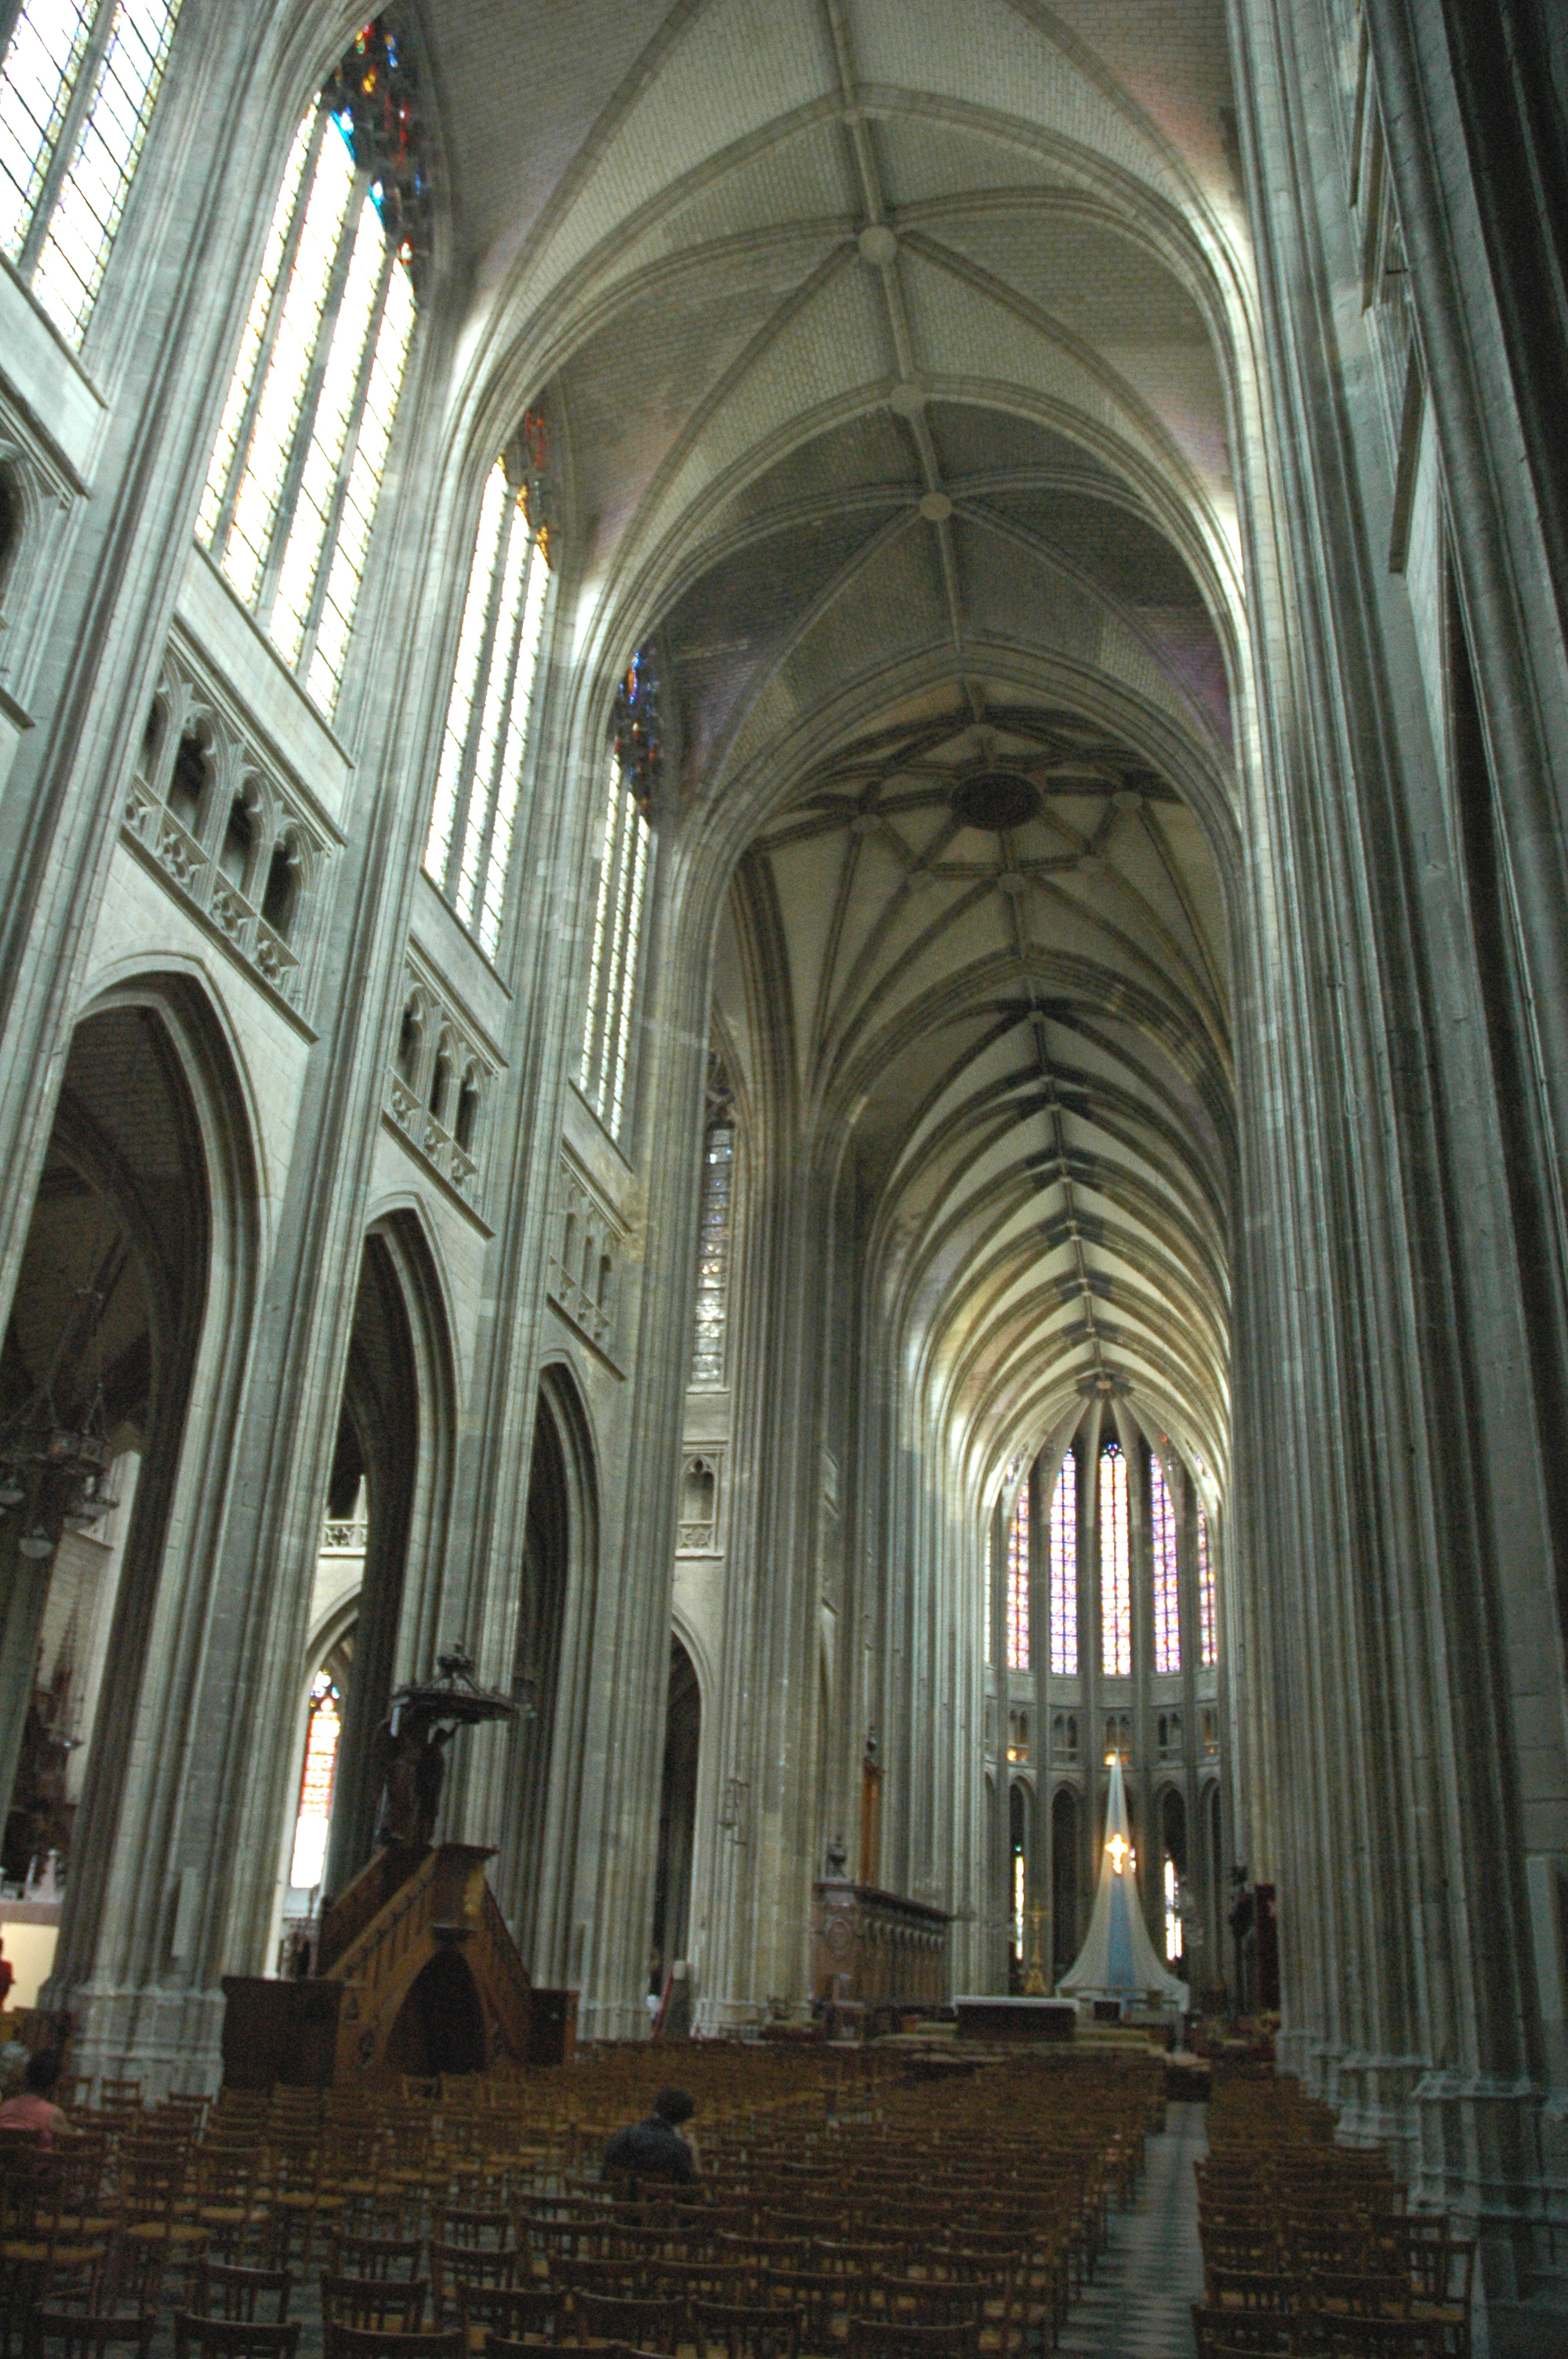 Interieur France Of File France Orleans Cathedrale Interieur 01 Jpg Wikipedia